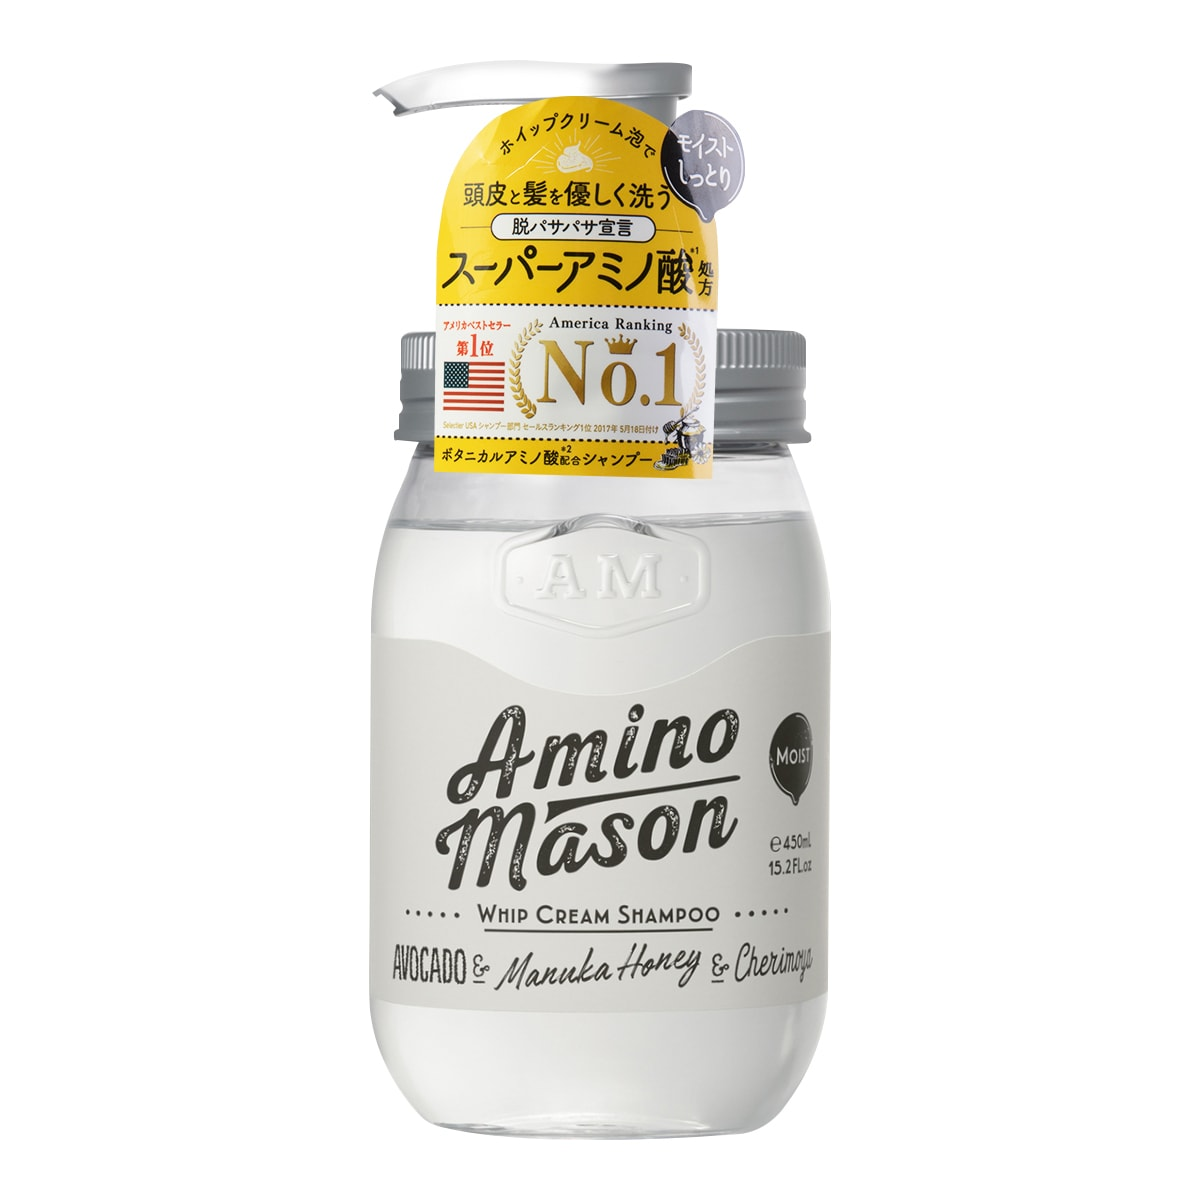 AMINO MASON Whip Cream Shampoo Moist 450ml